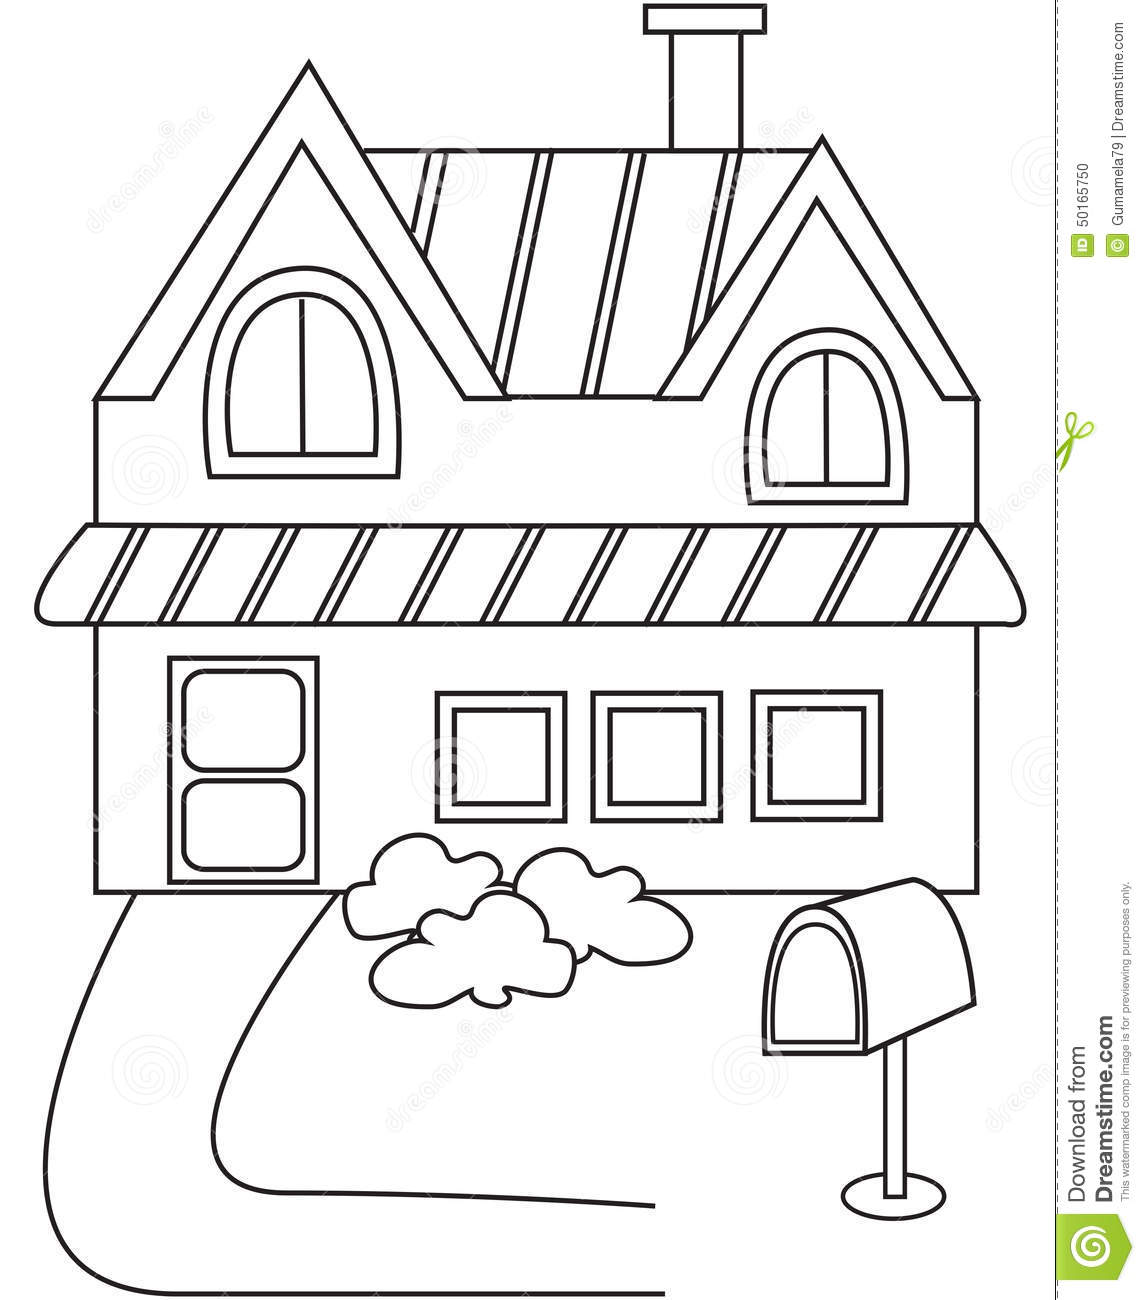 House coloring page stock illustration. Illustration of characters ...